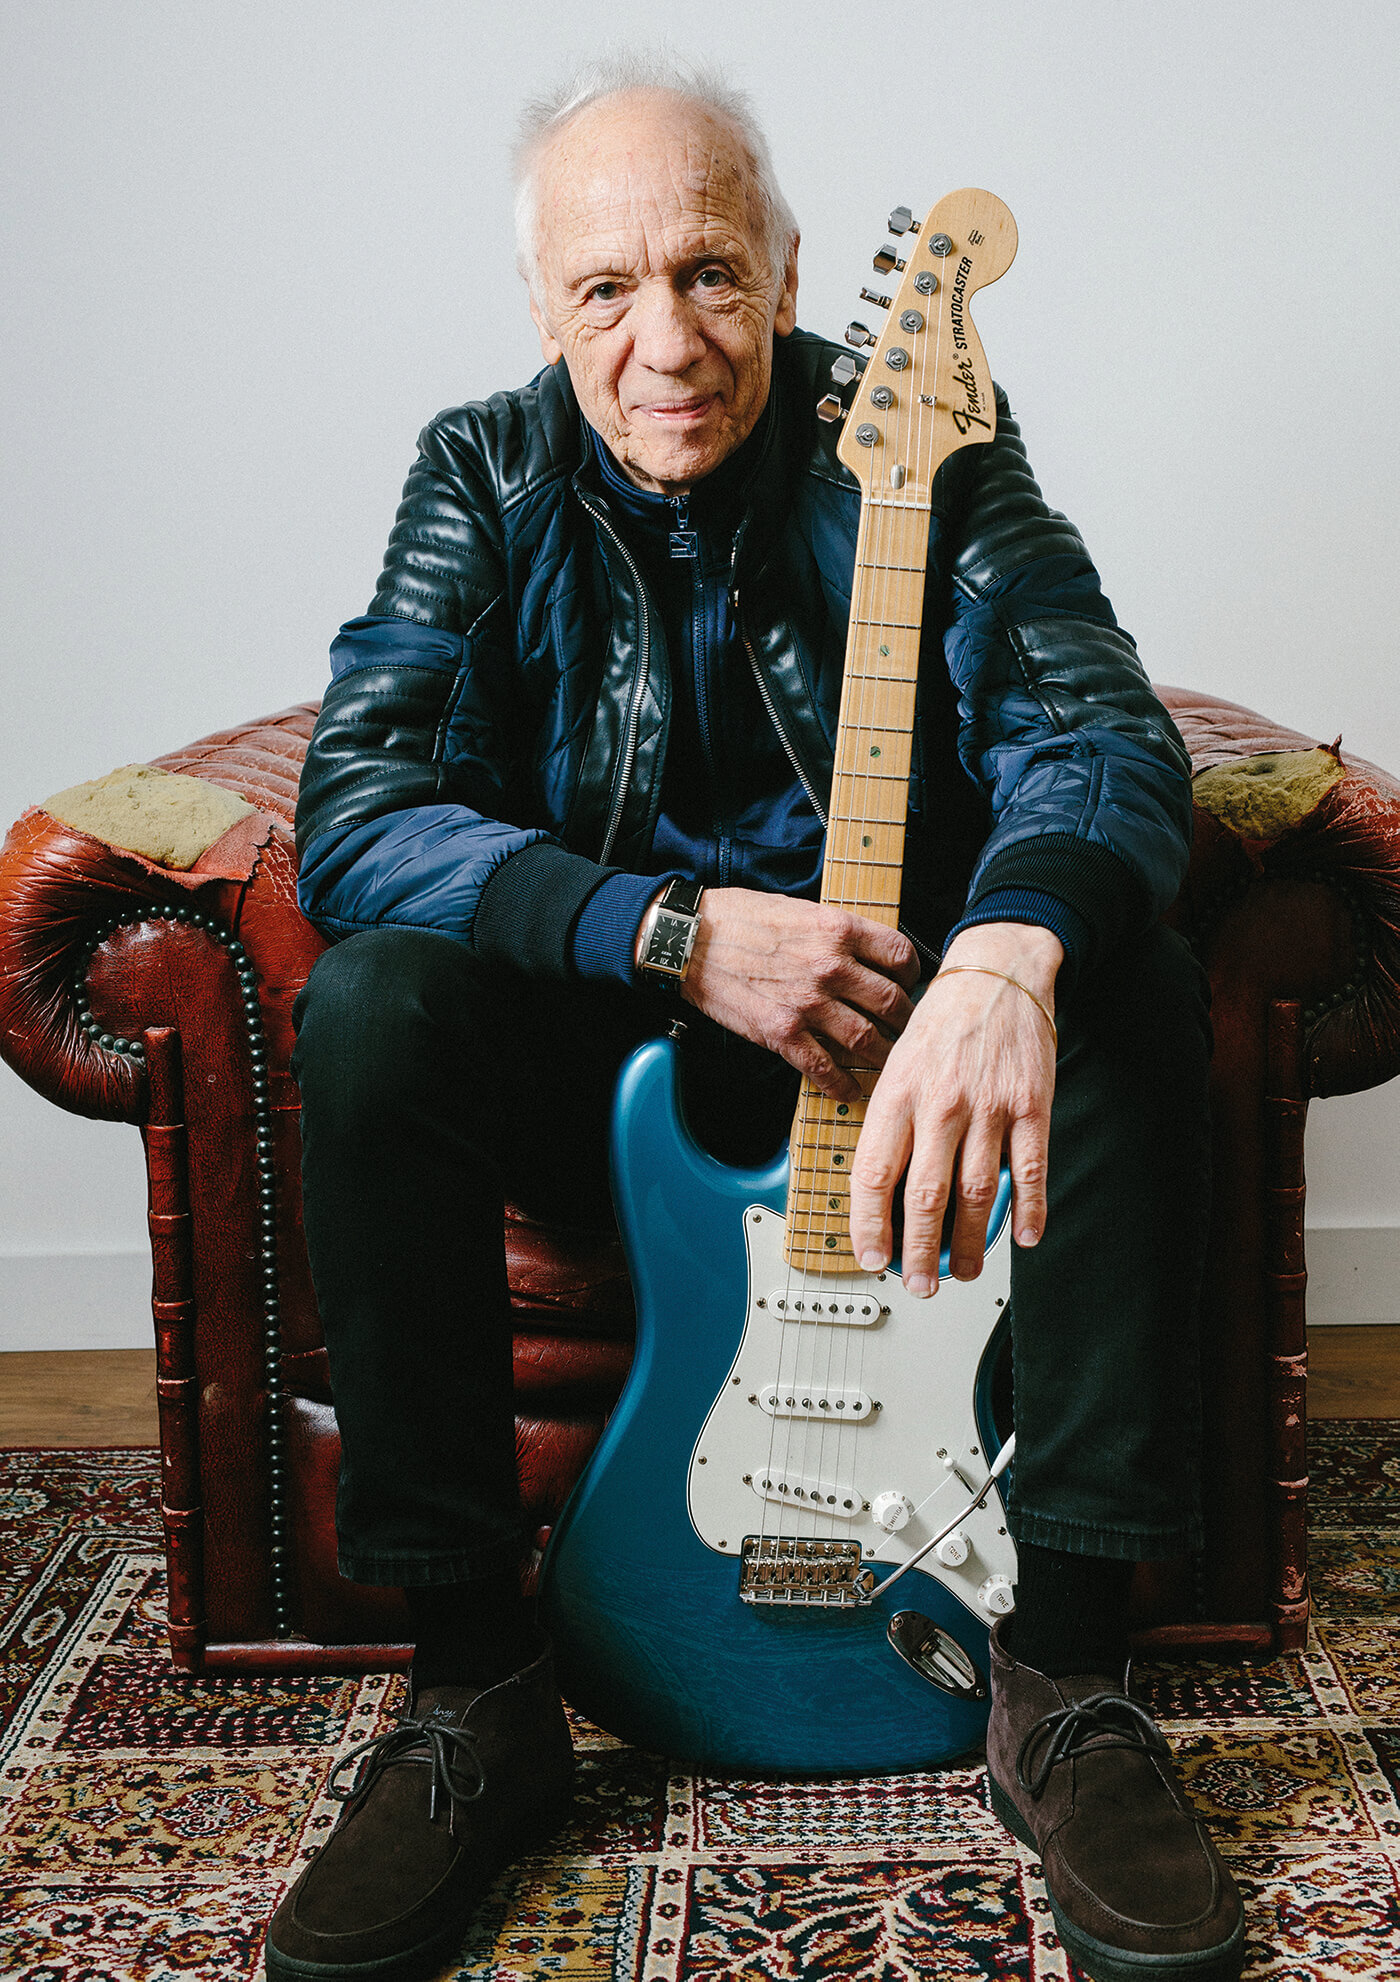 Interview: Robin Trower of Procul Harum